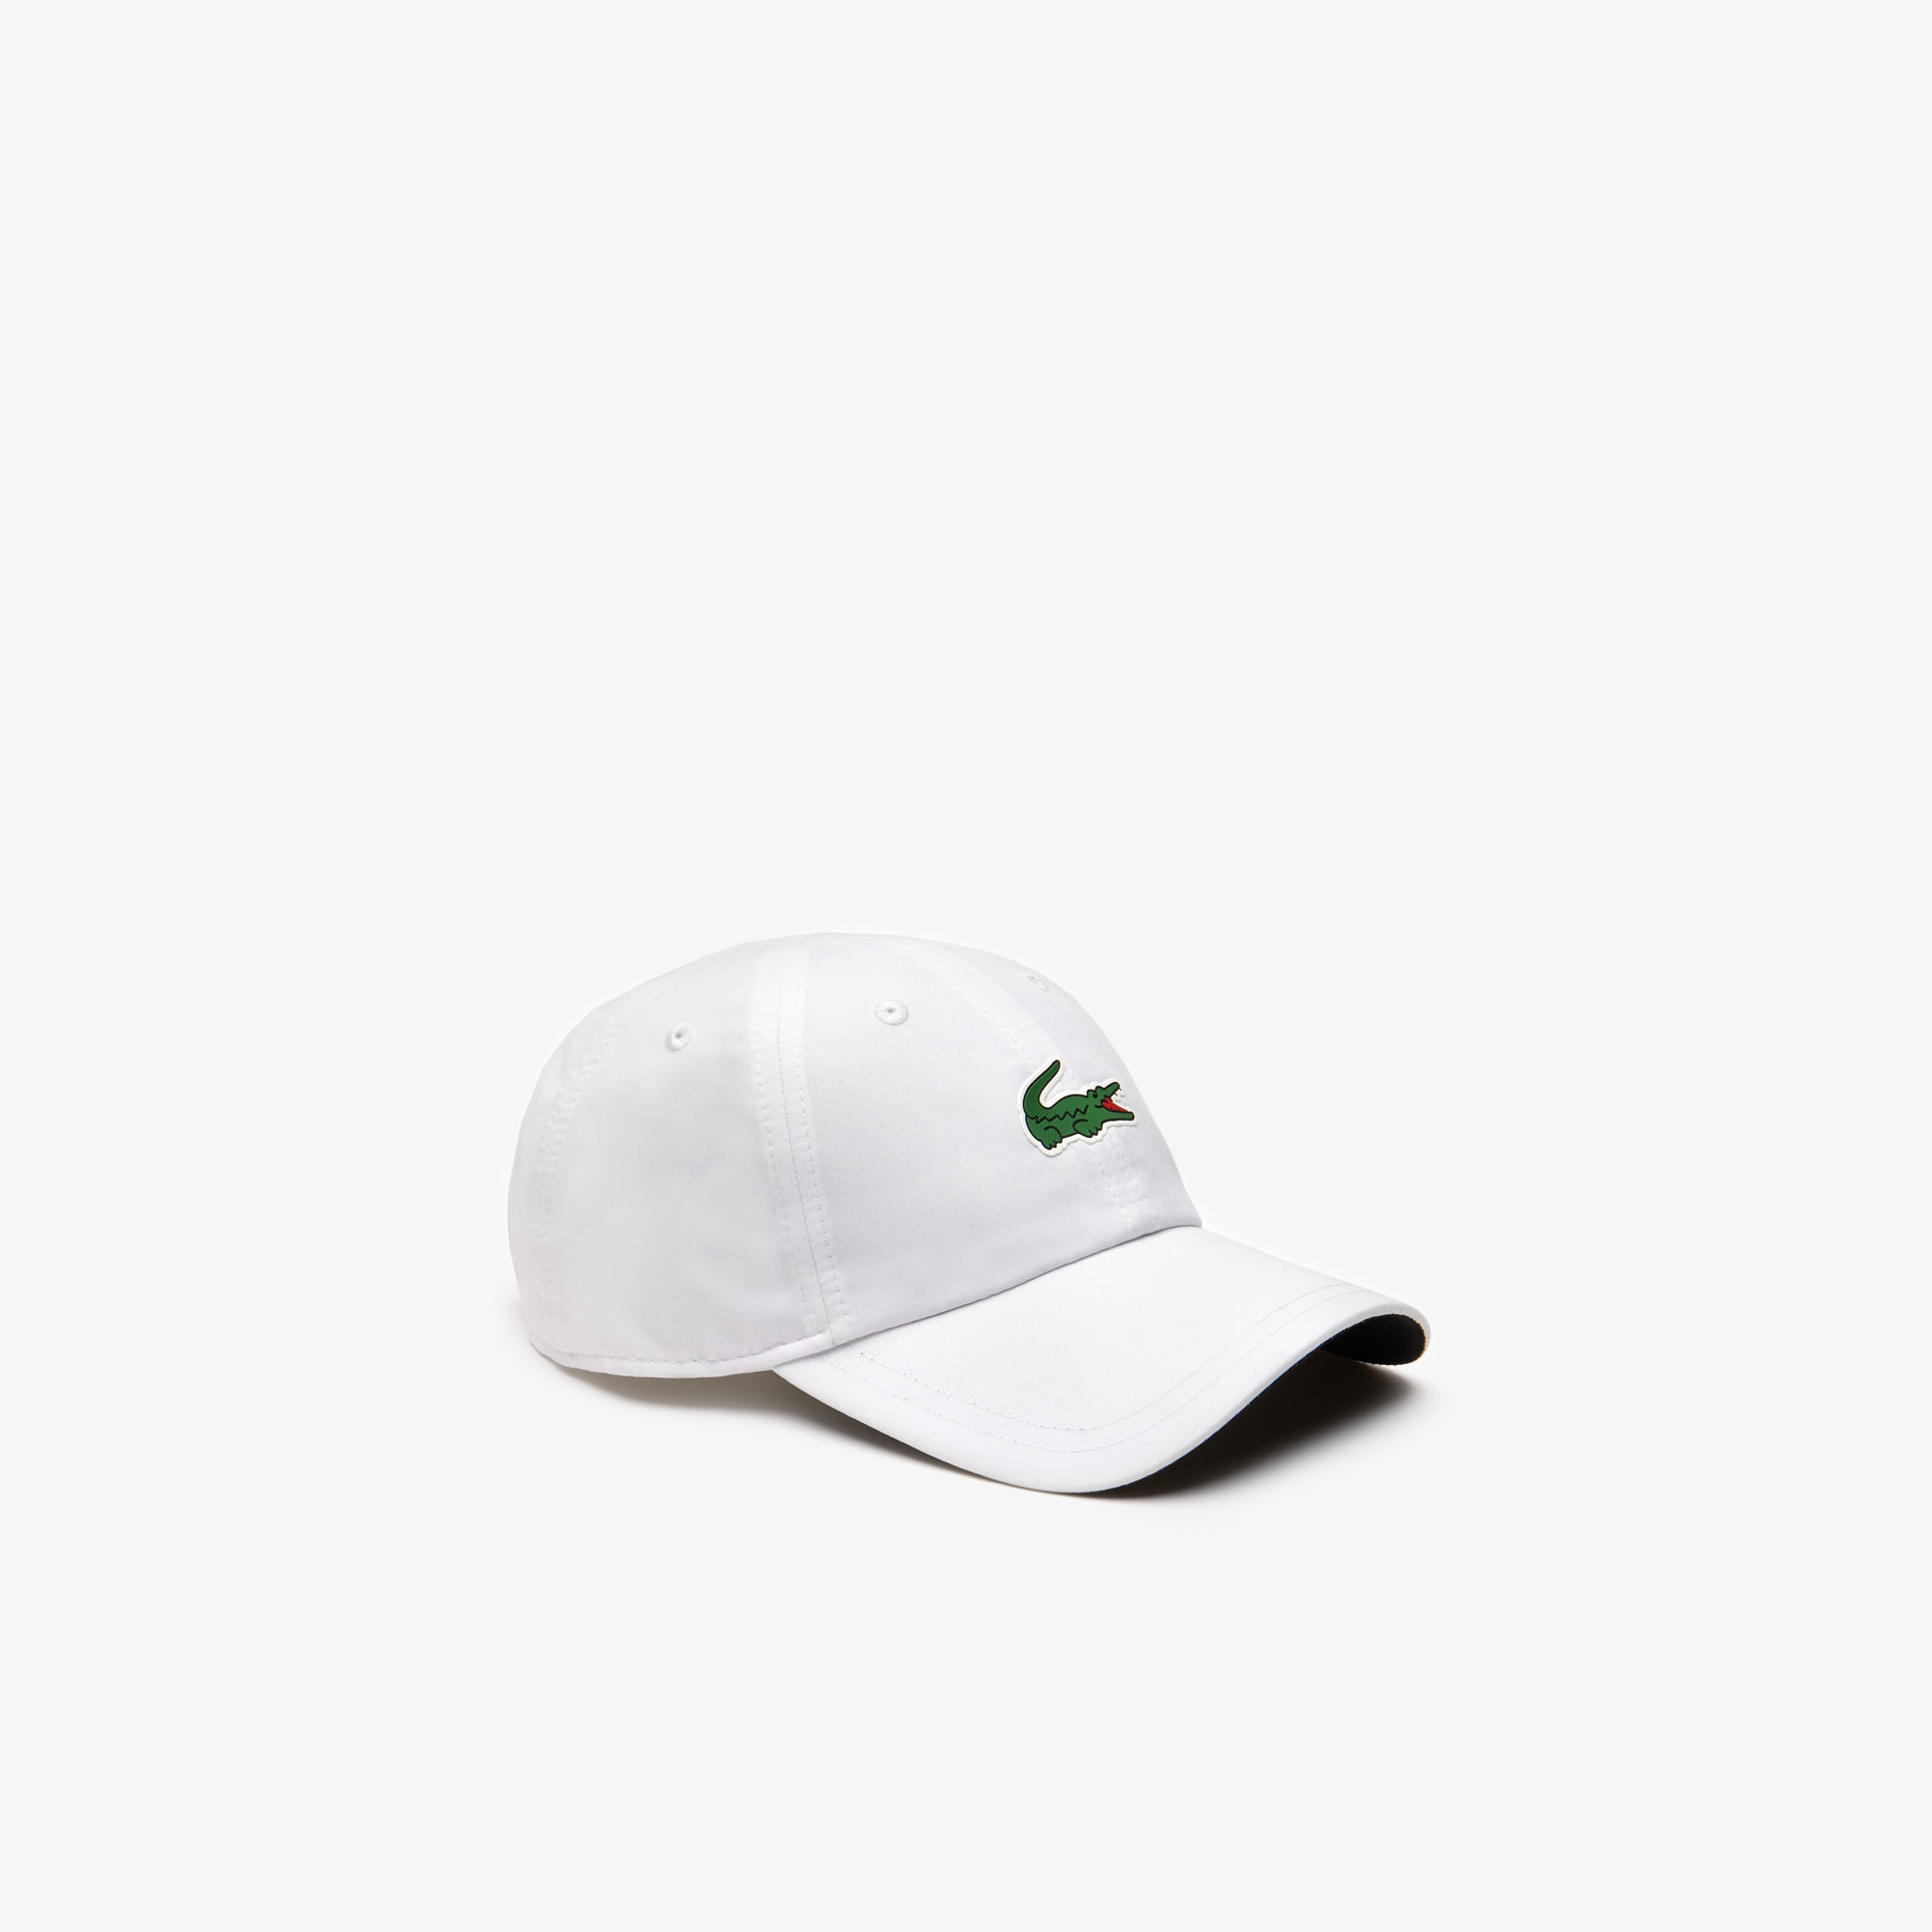 Men's SPORT Microfiber Cap - Novak Djokovic Collection